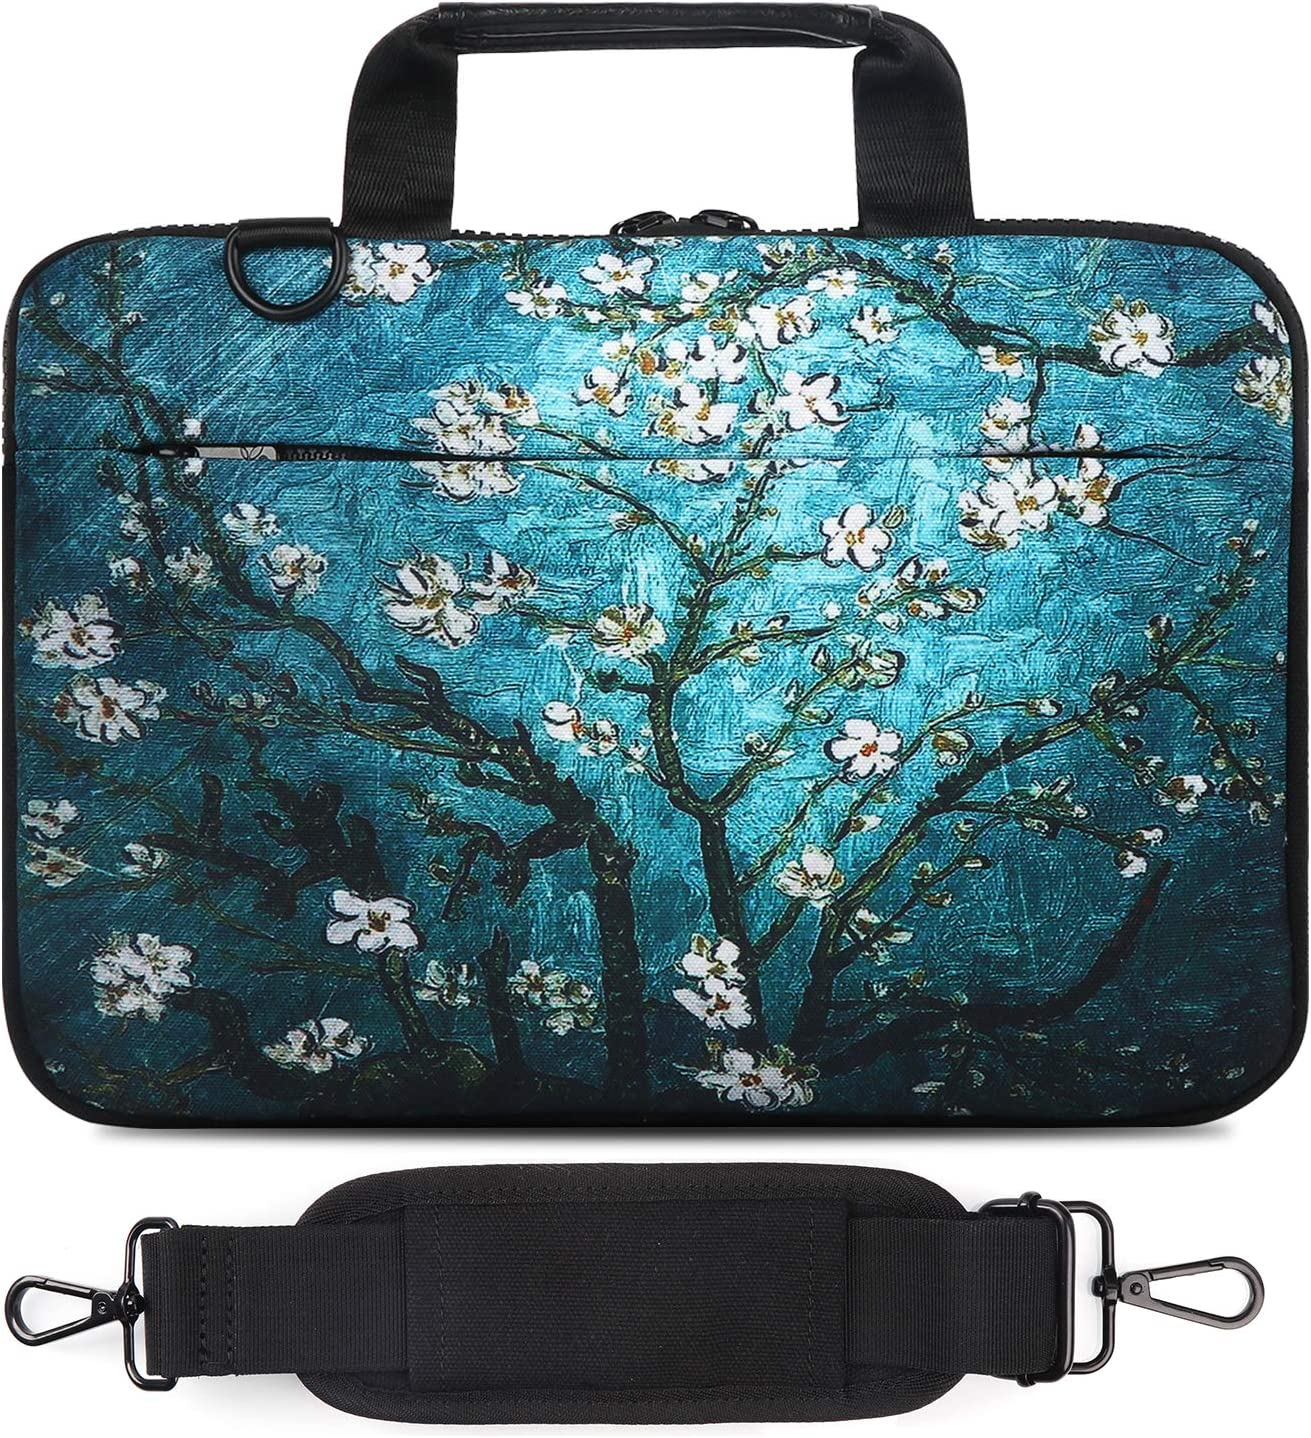 Holilife 14-15.6 Inch Laptop Shoulder Bag, Protective Notebook Messenger Briefcase Compatible with MacBook Air MacBook Pro Ultrabook Chromebook, Blooming Apricot Flower